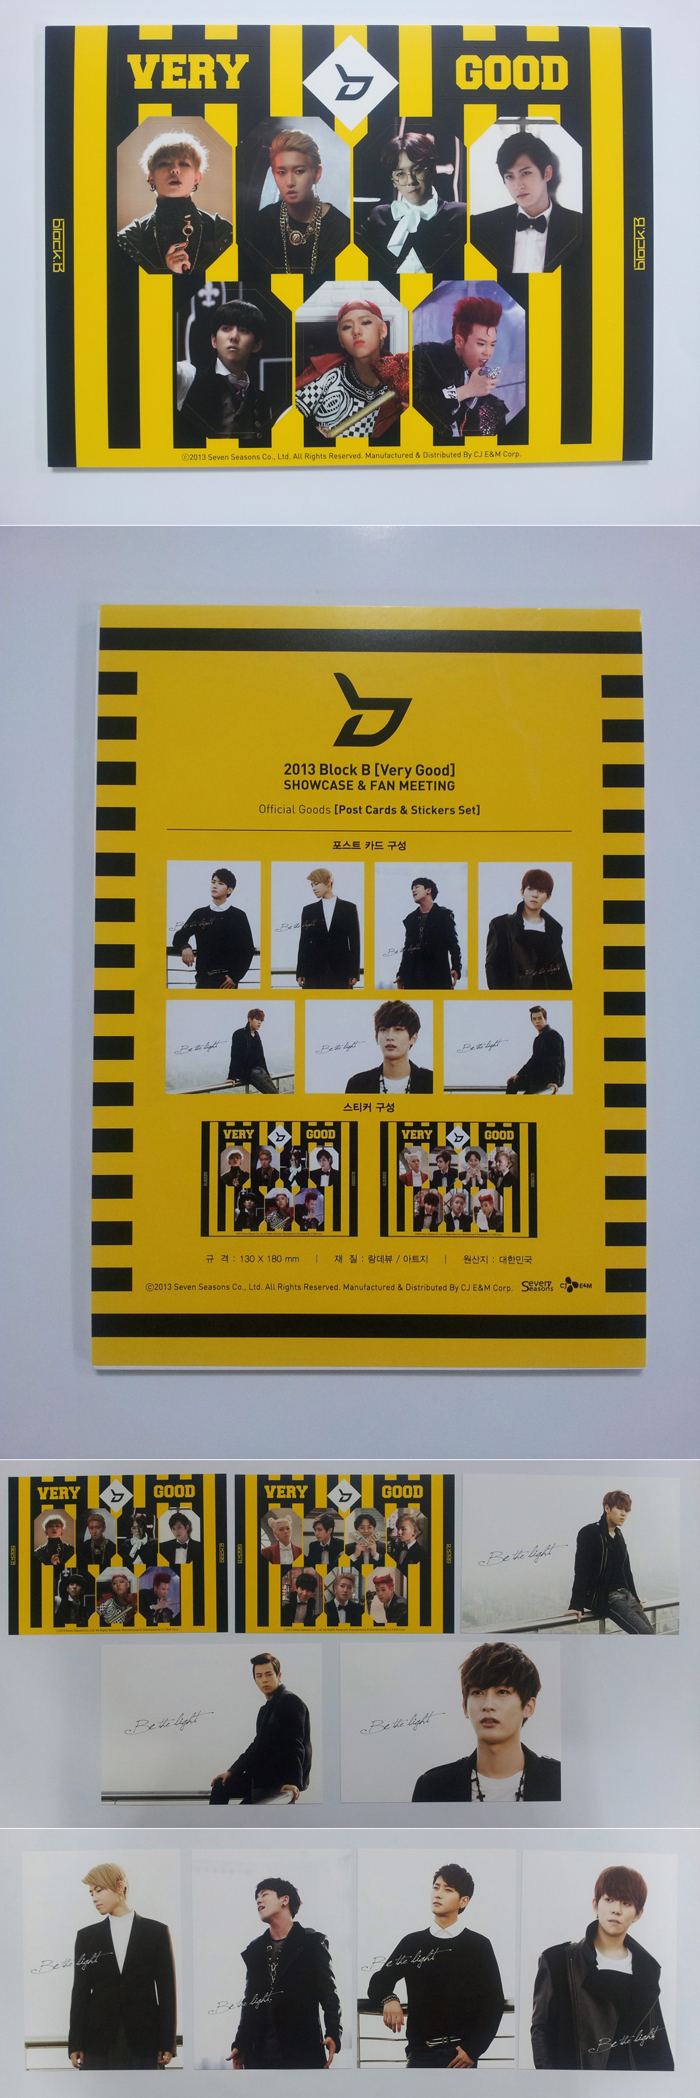 [BLOCK B] Official Show Case Goods (Post Card Sticker Set)